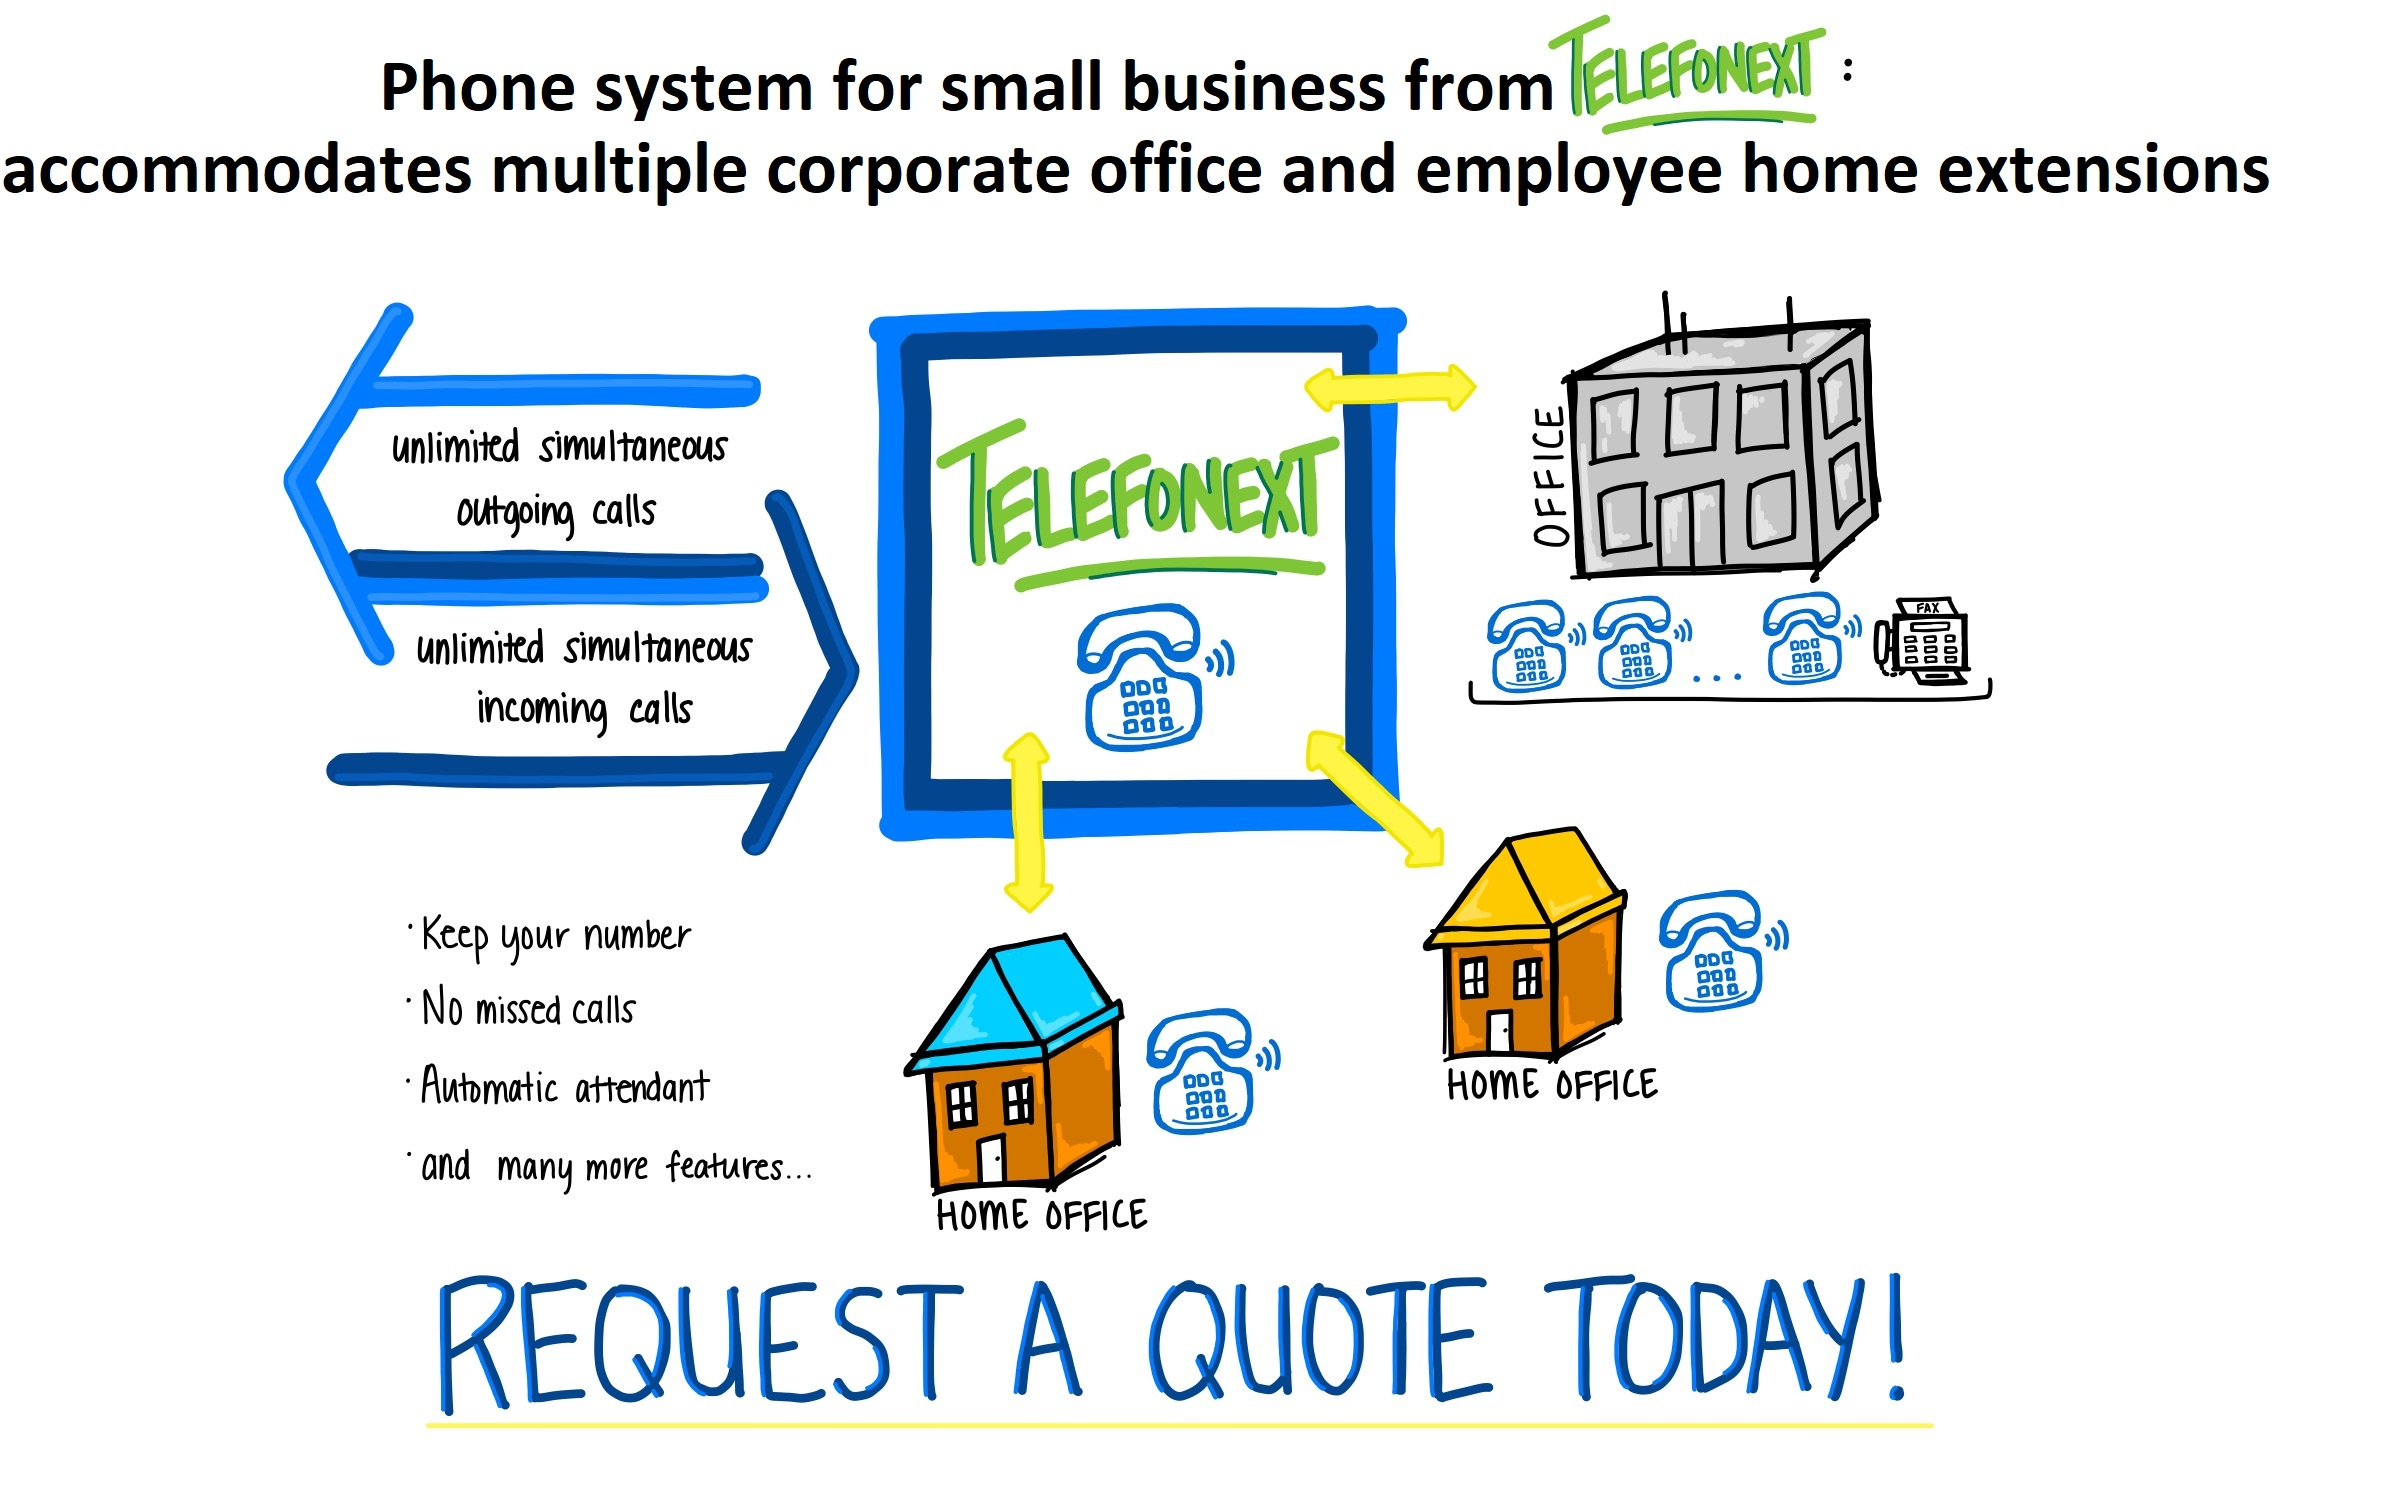 Phone system setup for small business from Telefonext: Accommodates multiple corporate office and employee home extensions